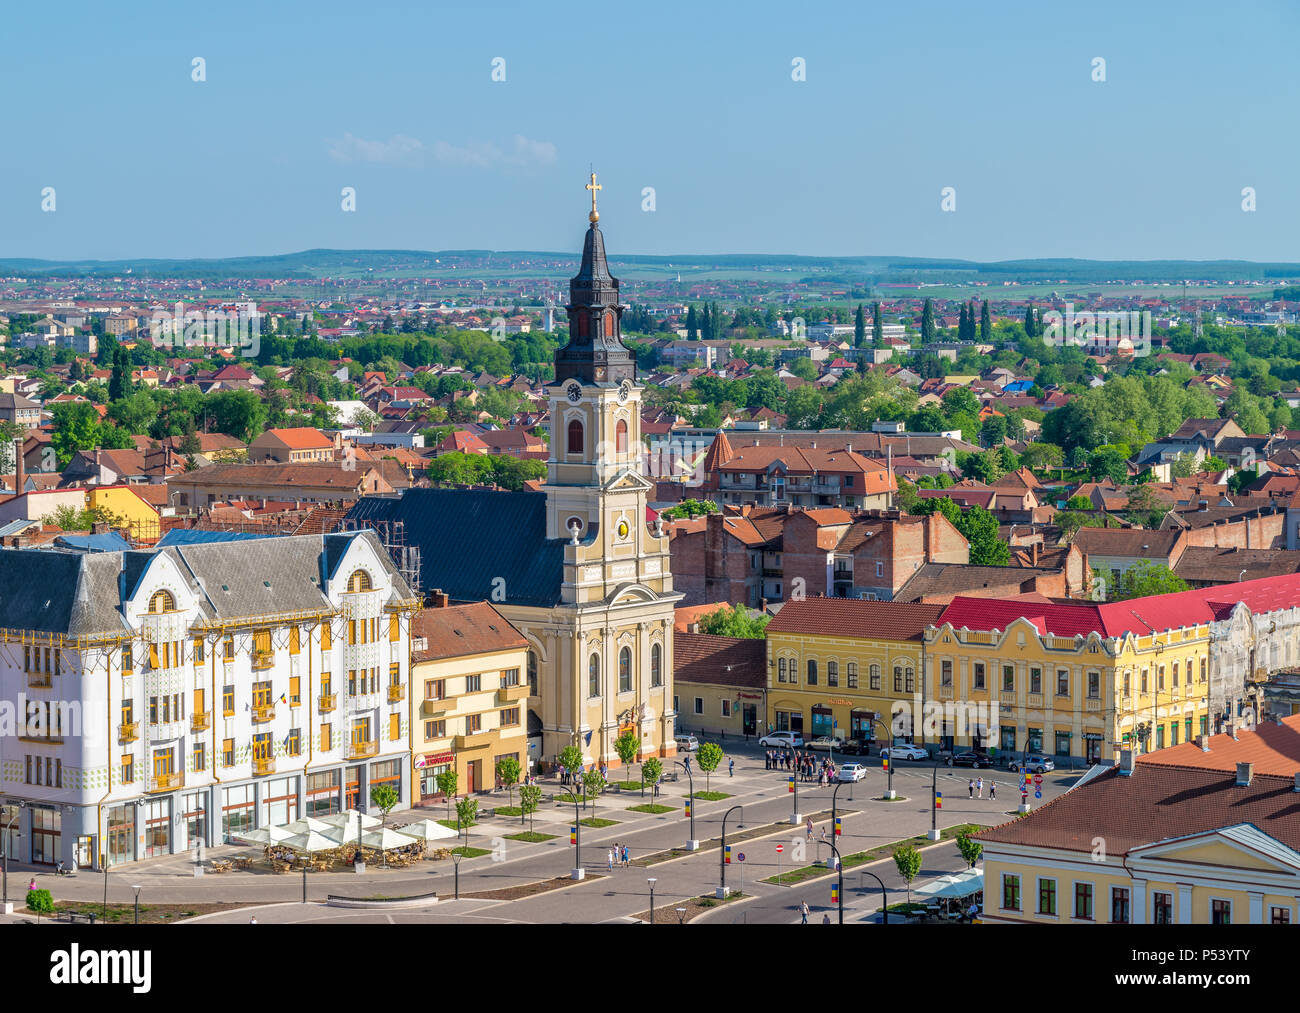 ORADEA, ROMANIA - 28 APRIL, 2018:  Church with the moon in the Union Square viewed from above in Oradea, Romania. - Stock Image